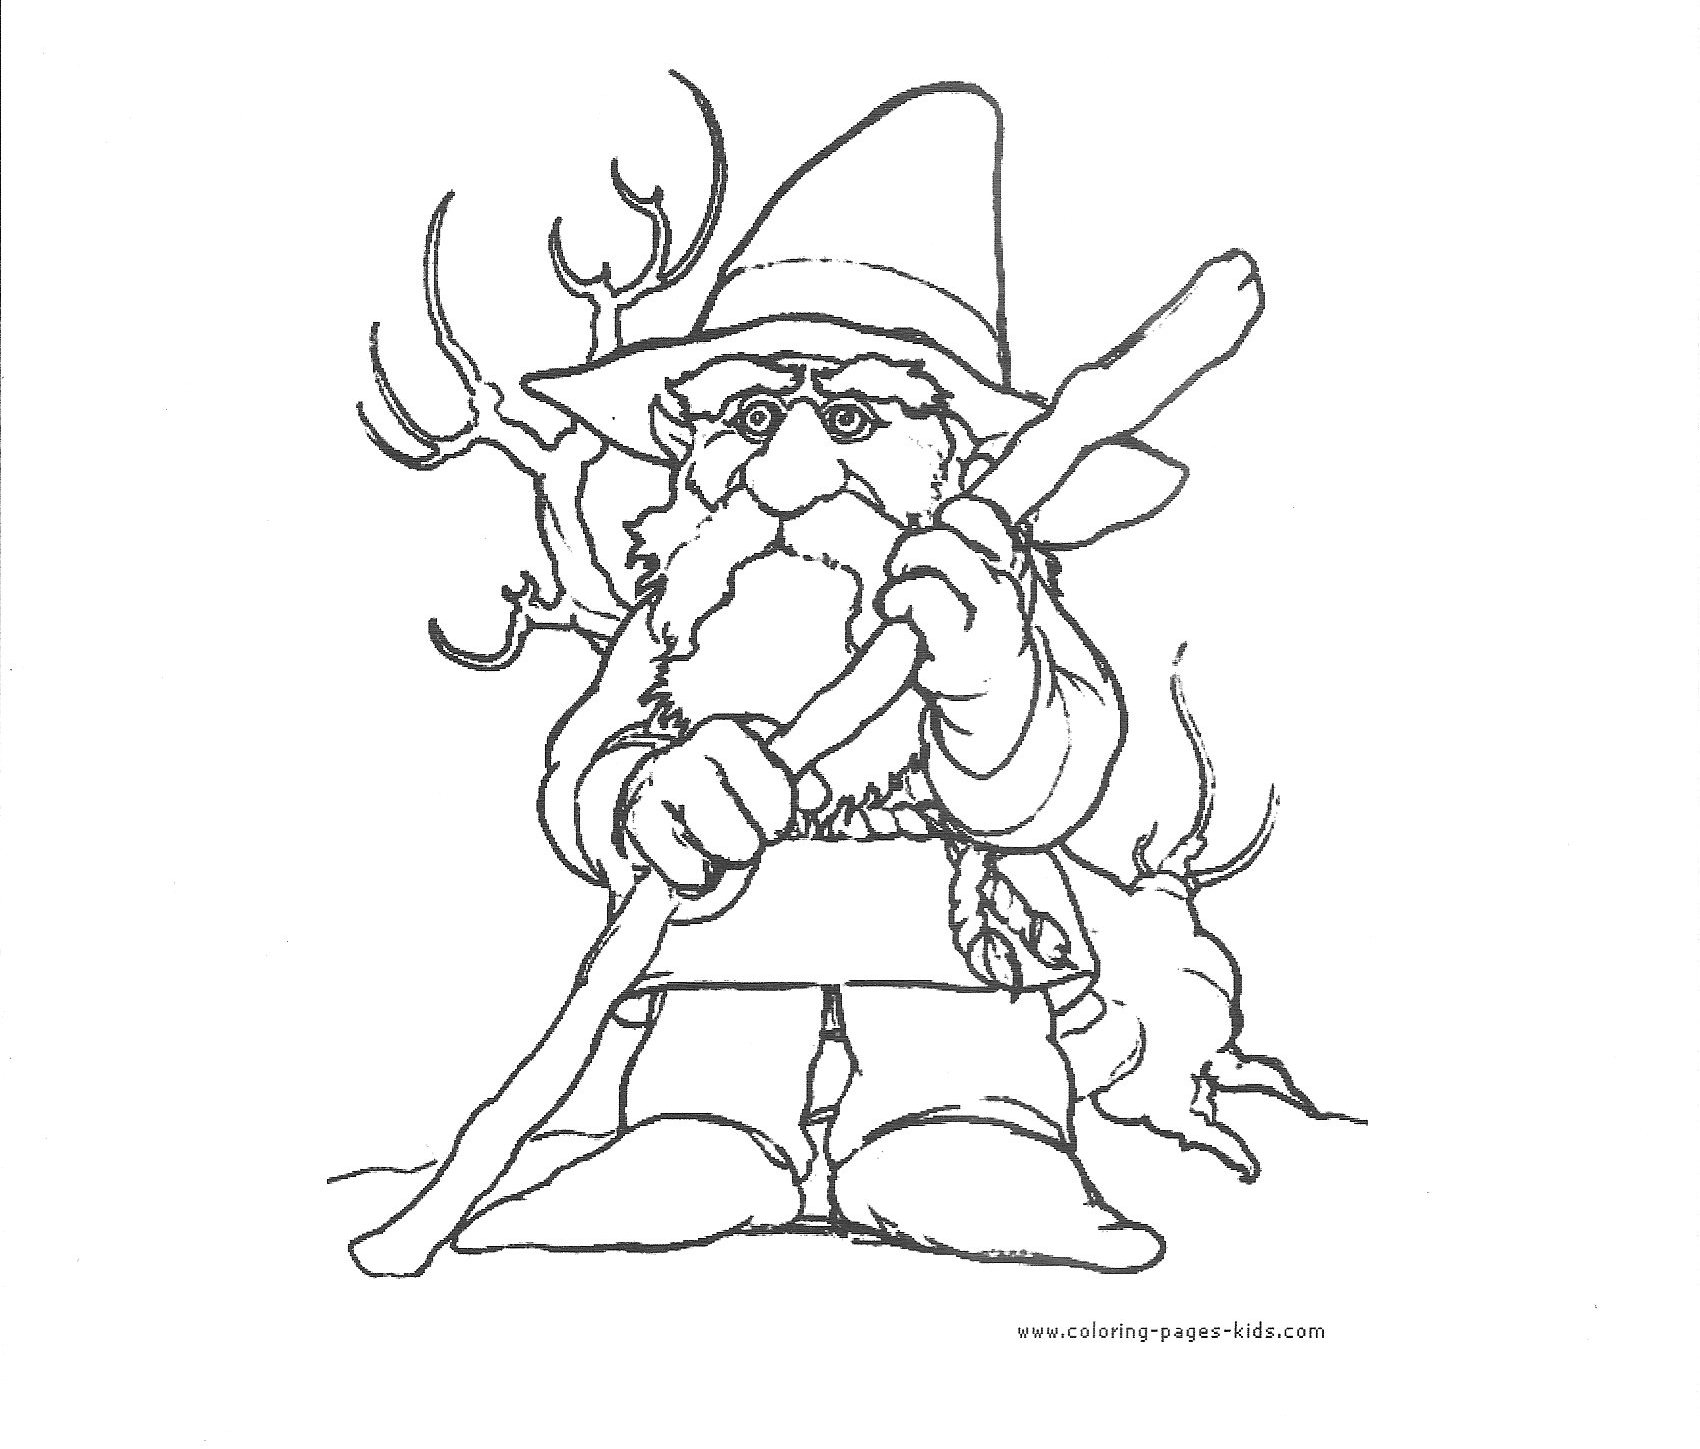 Butt coloring pages ~ A COLORING PAGE OF BEARS BUTT « BearsButt.com | Stories ...